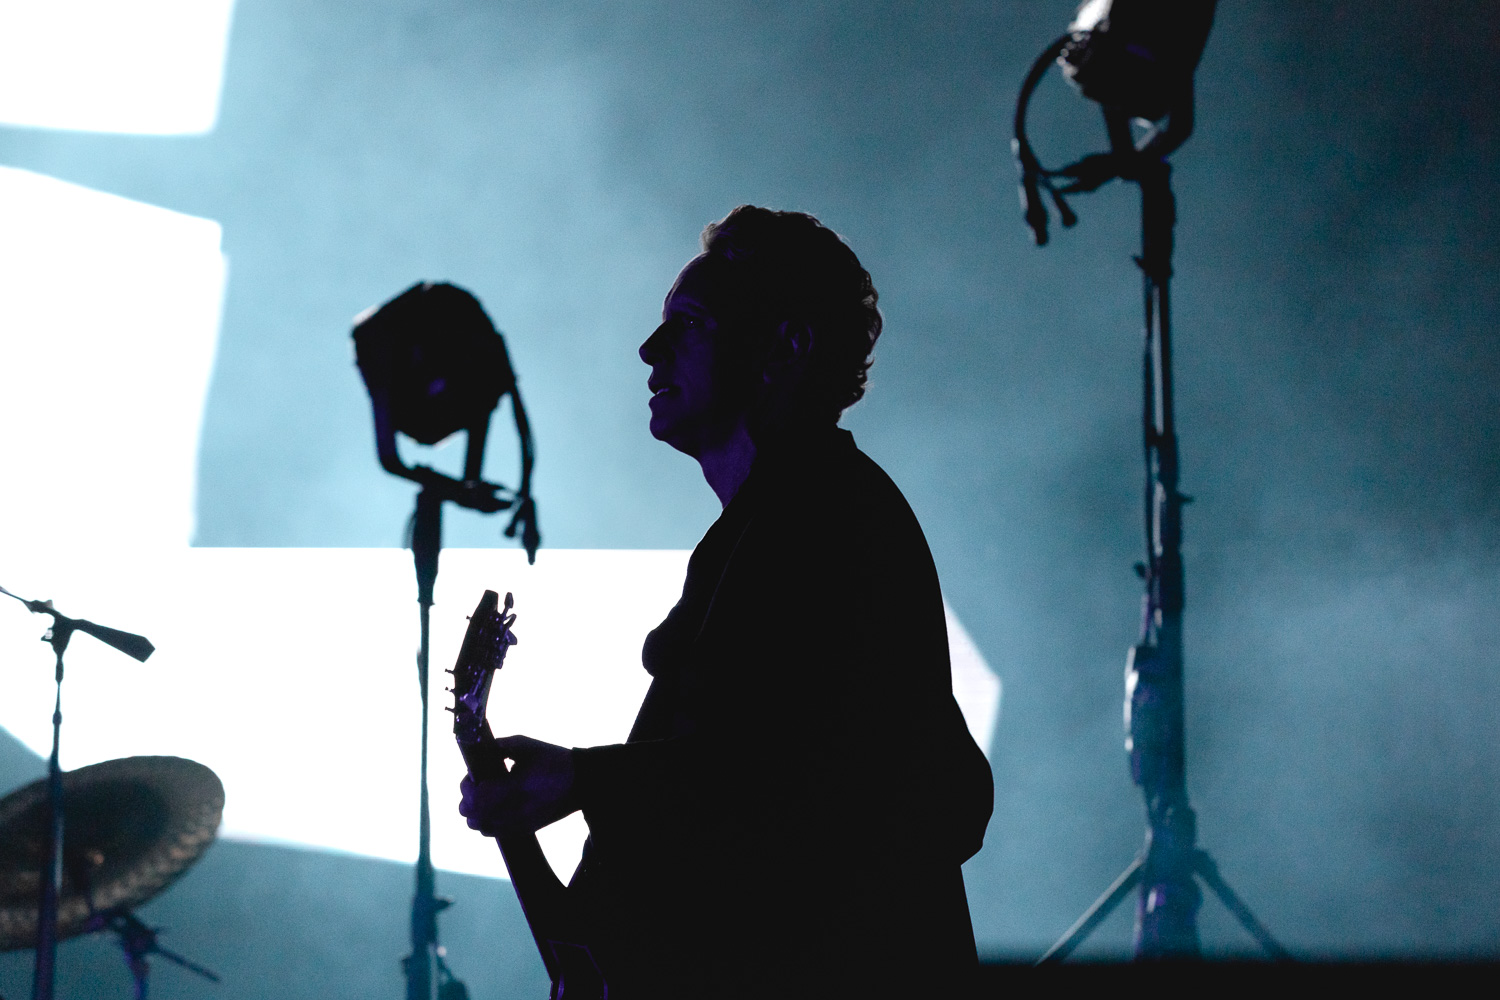 The silhouette of Martin Gore with shining lights from the giant display behind. Photo: Lmsorenson.net